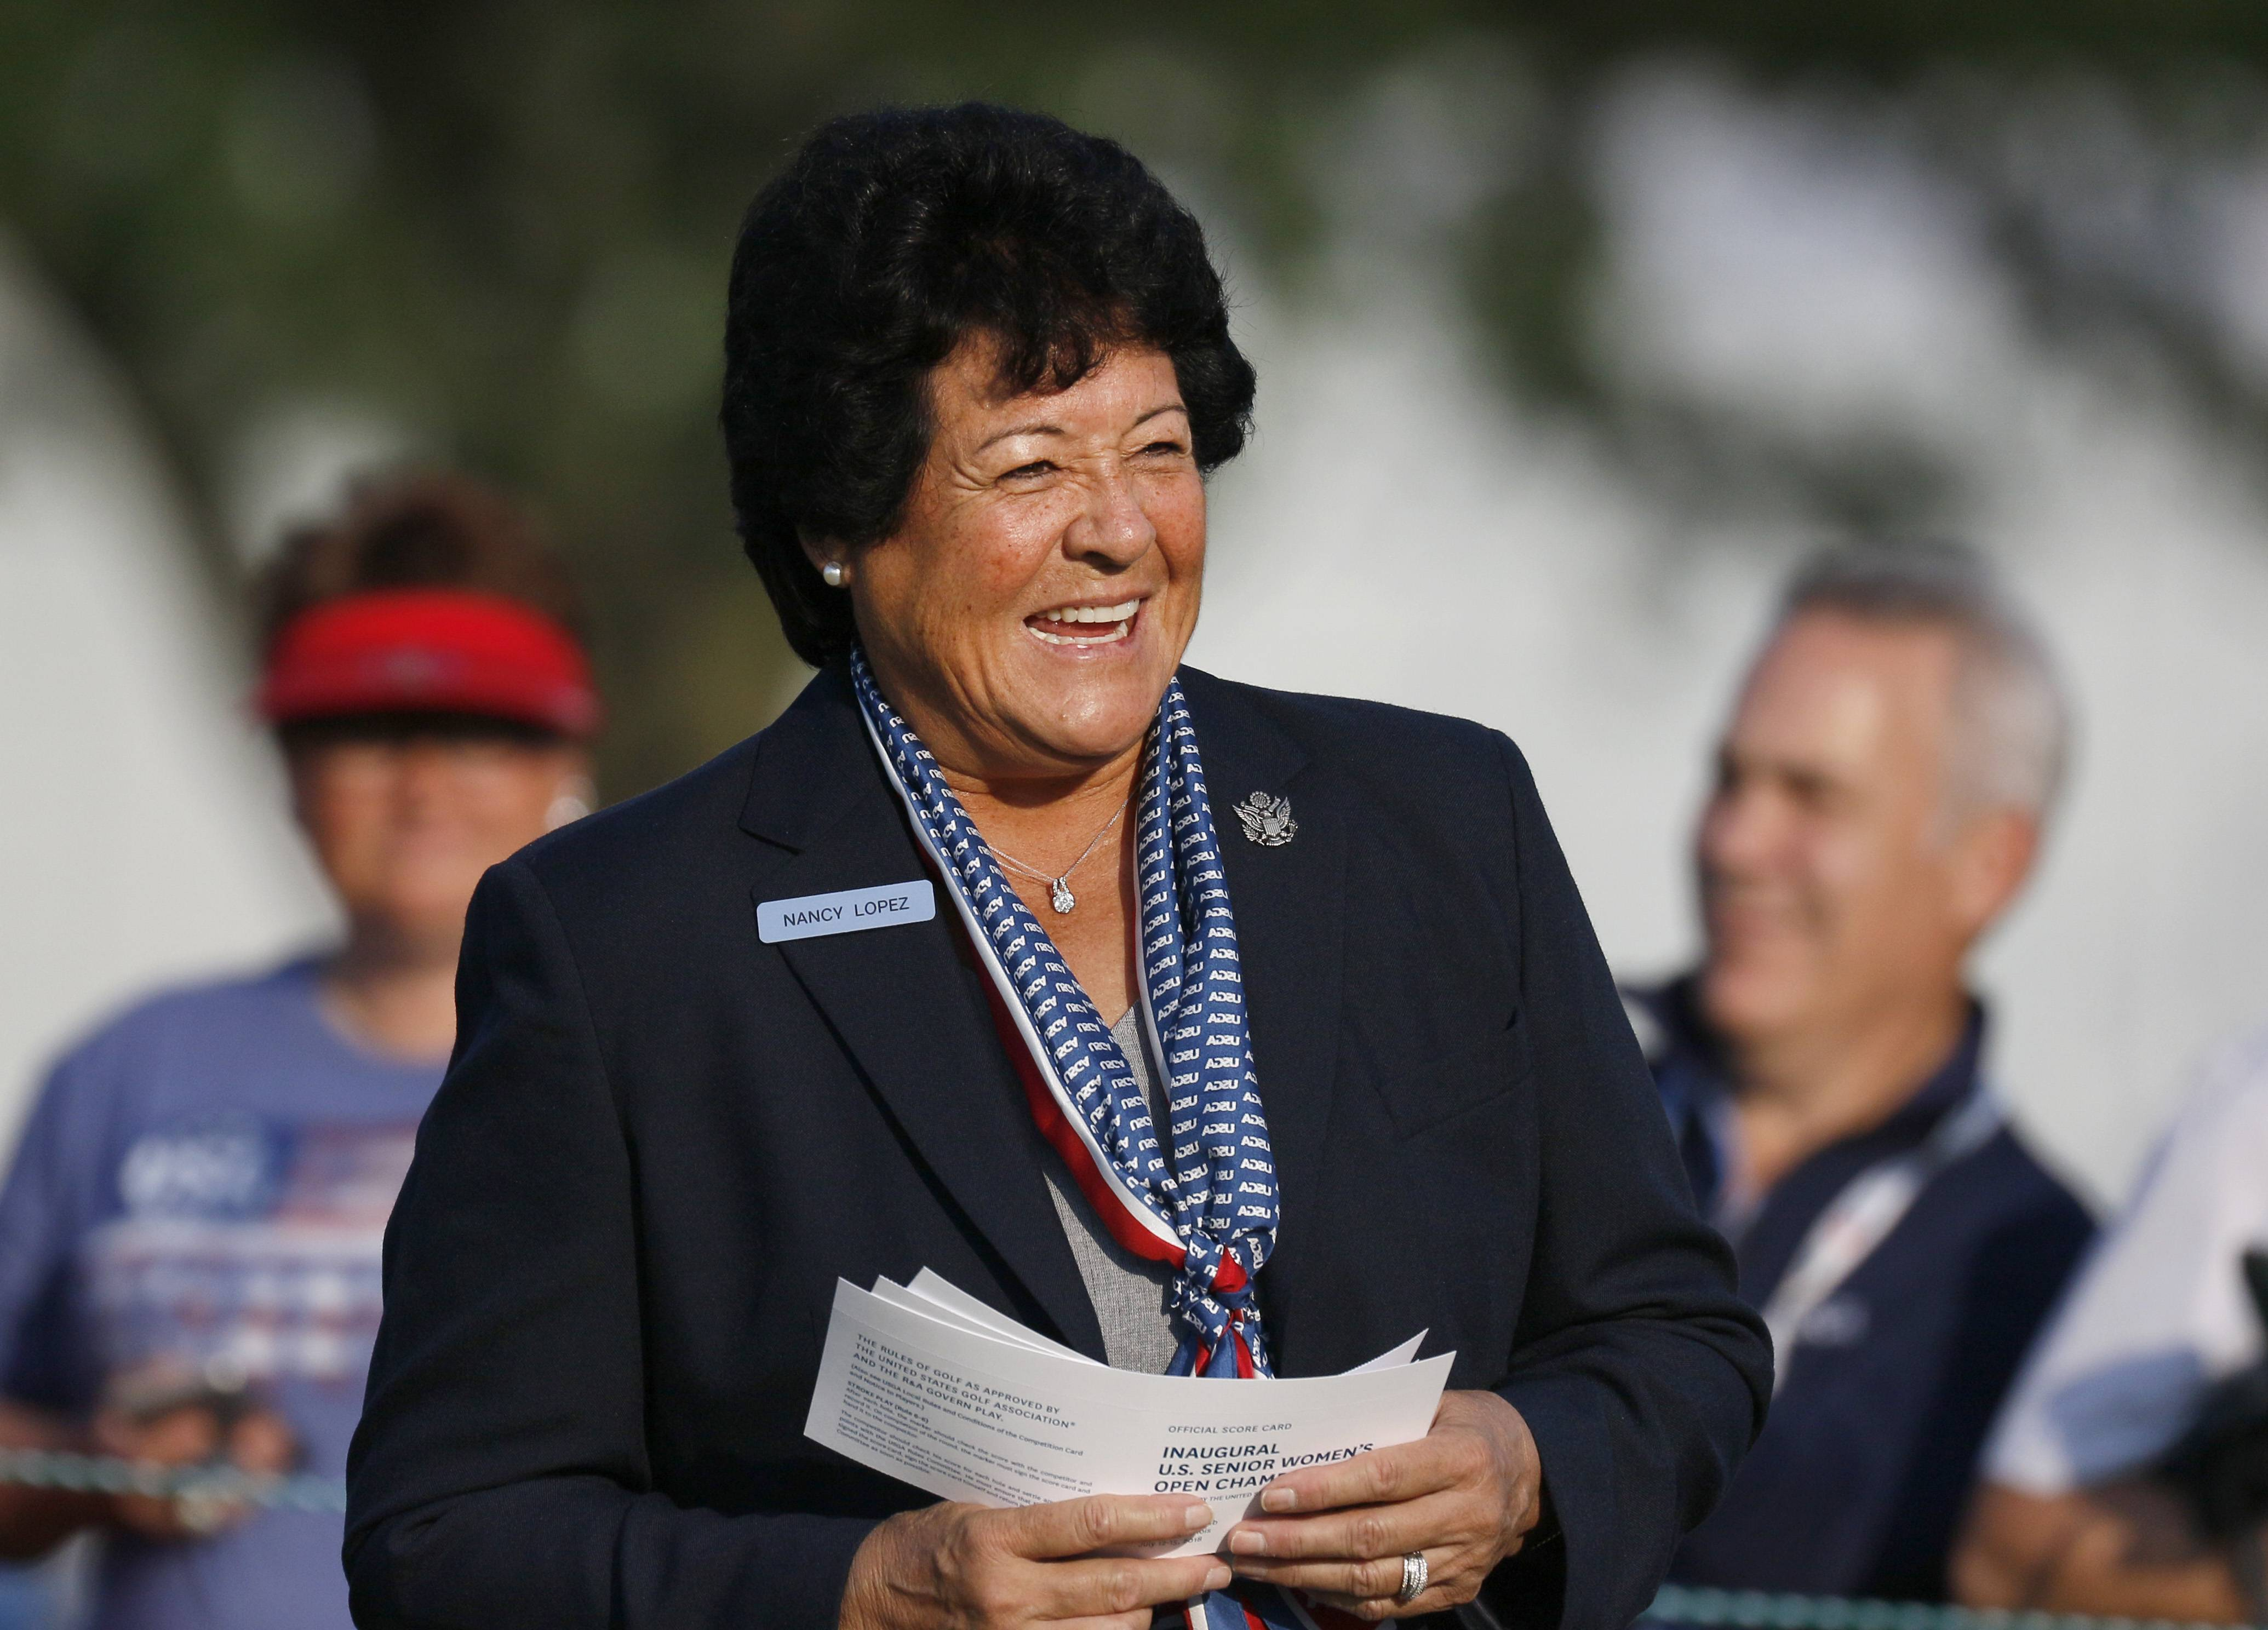 As honorary starter, Nancy Lopez announces golfers at the first tee during the opening round of the inaugural U.S. Senior Women's Open Championship at the Chicago Golf Club in Wheaton.